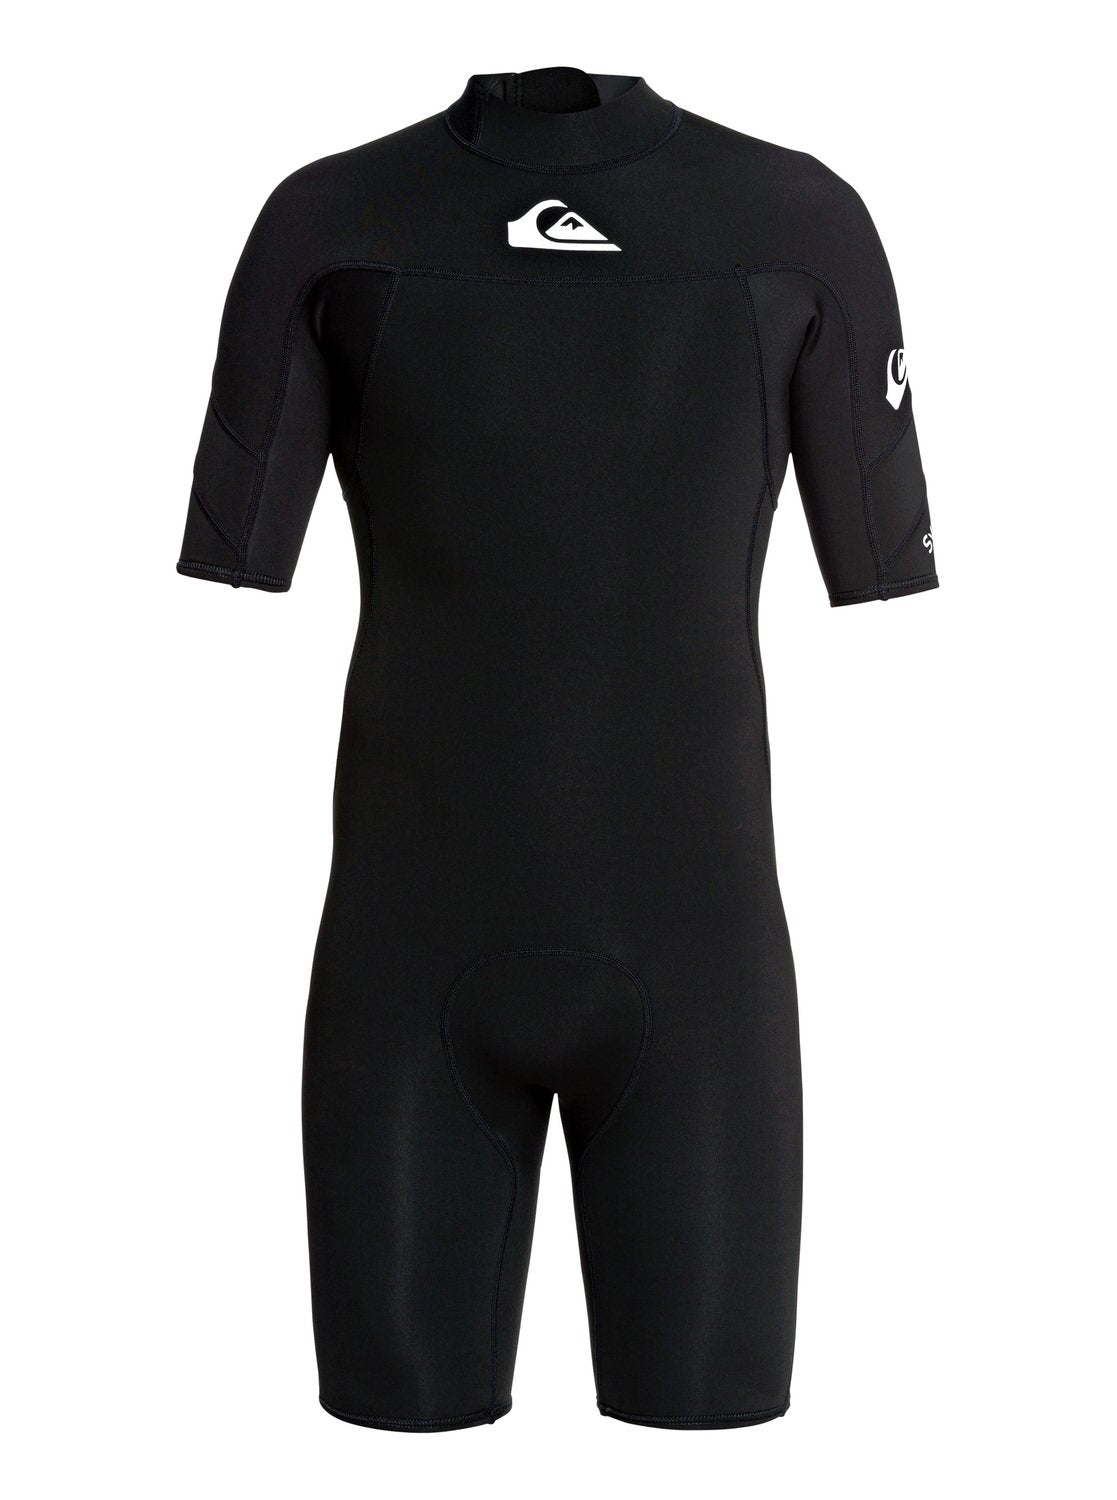 Quiksilver 2/2mm Syncro Short Sleeve Back Zip FLT Springsuit